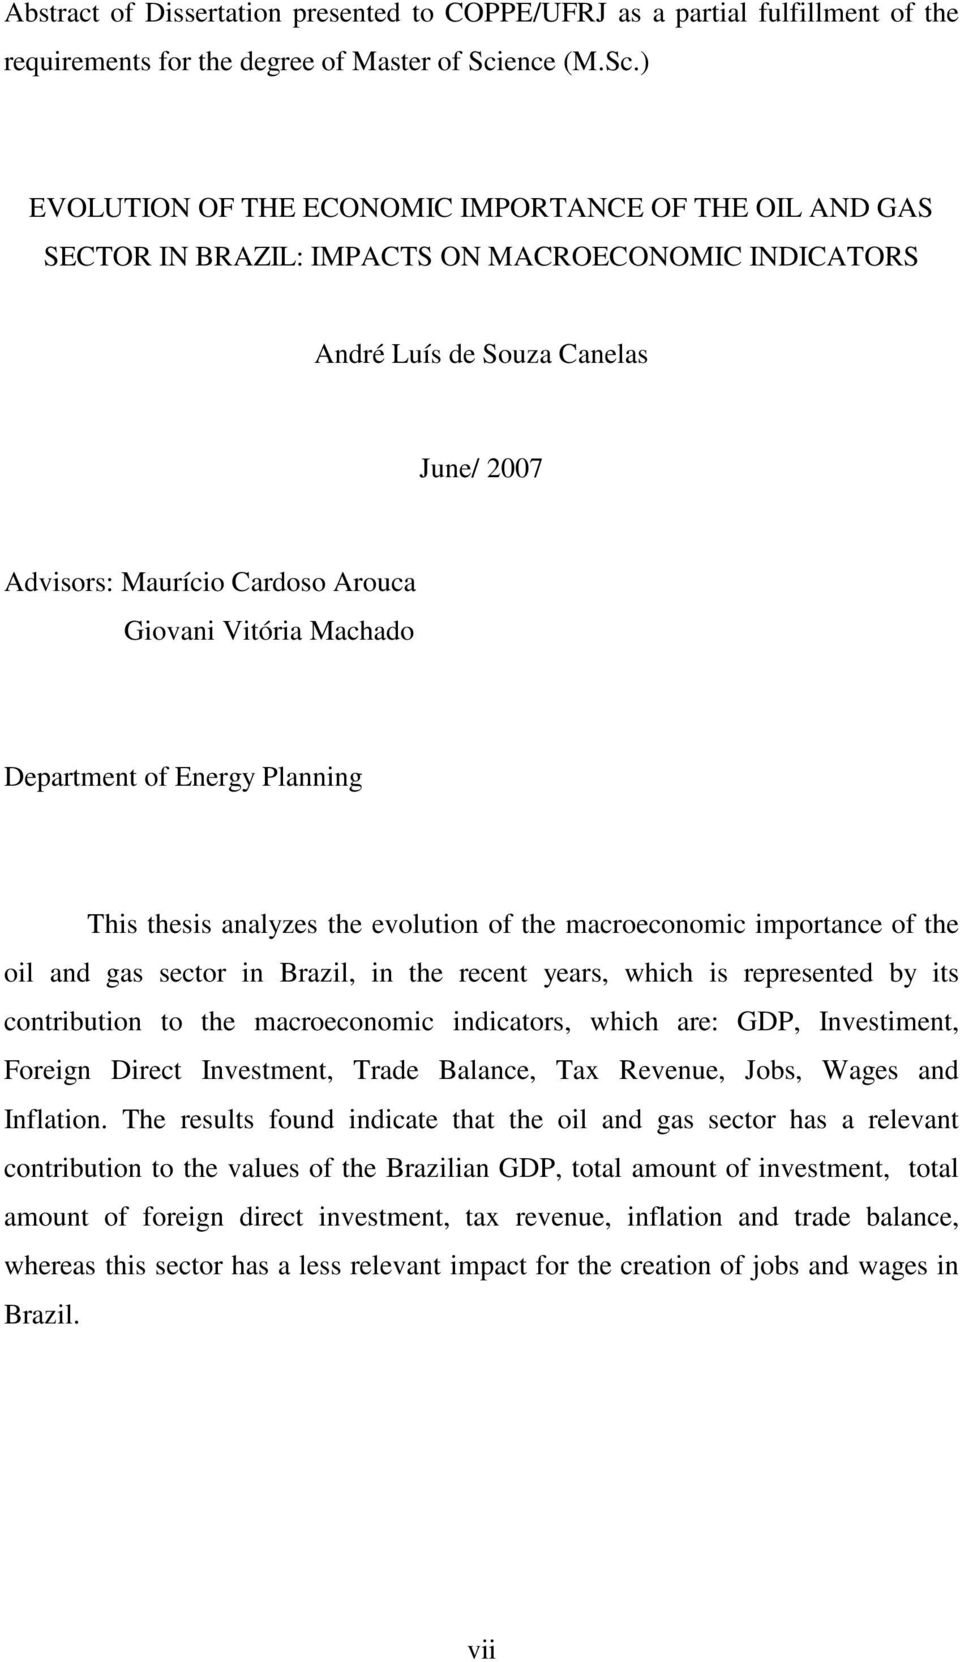 ) EVOLUTION OF THE ECONOMIC IMPORTANCE OF THE OIL AND GAS SECTOR IN BRAZIL: IMPACTS ON MACROECONOMIC INDICATORS André Luís de Souza Canelas June/ 2007 Advisors: Maurício Cardoso Arouca Giovani